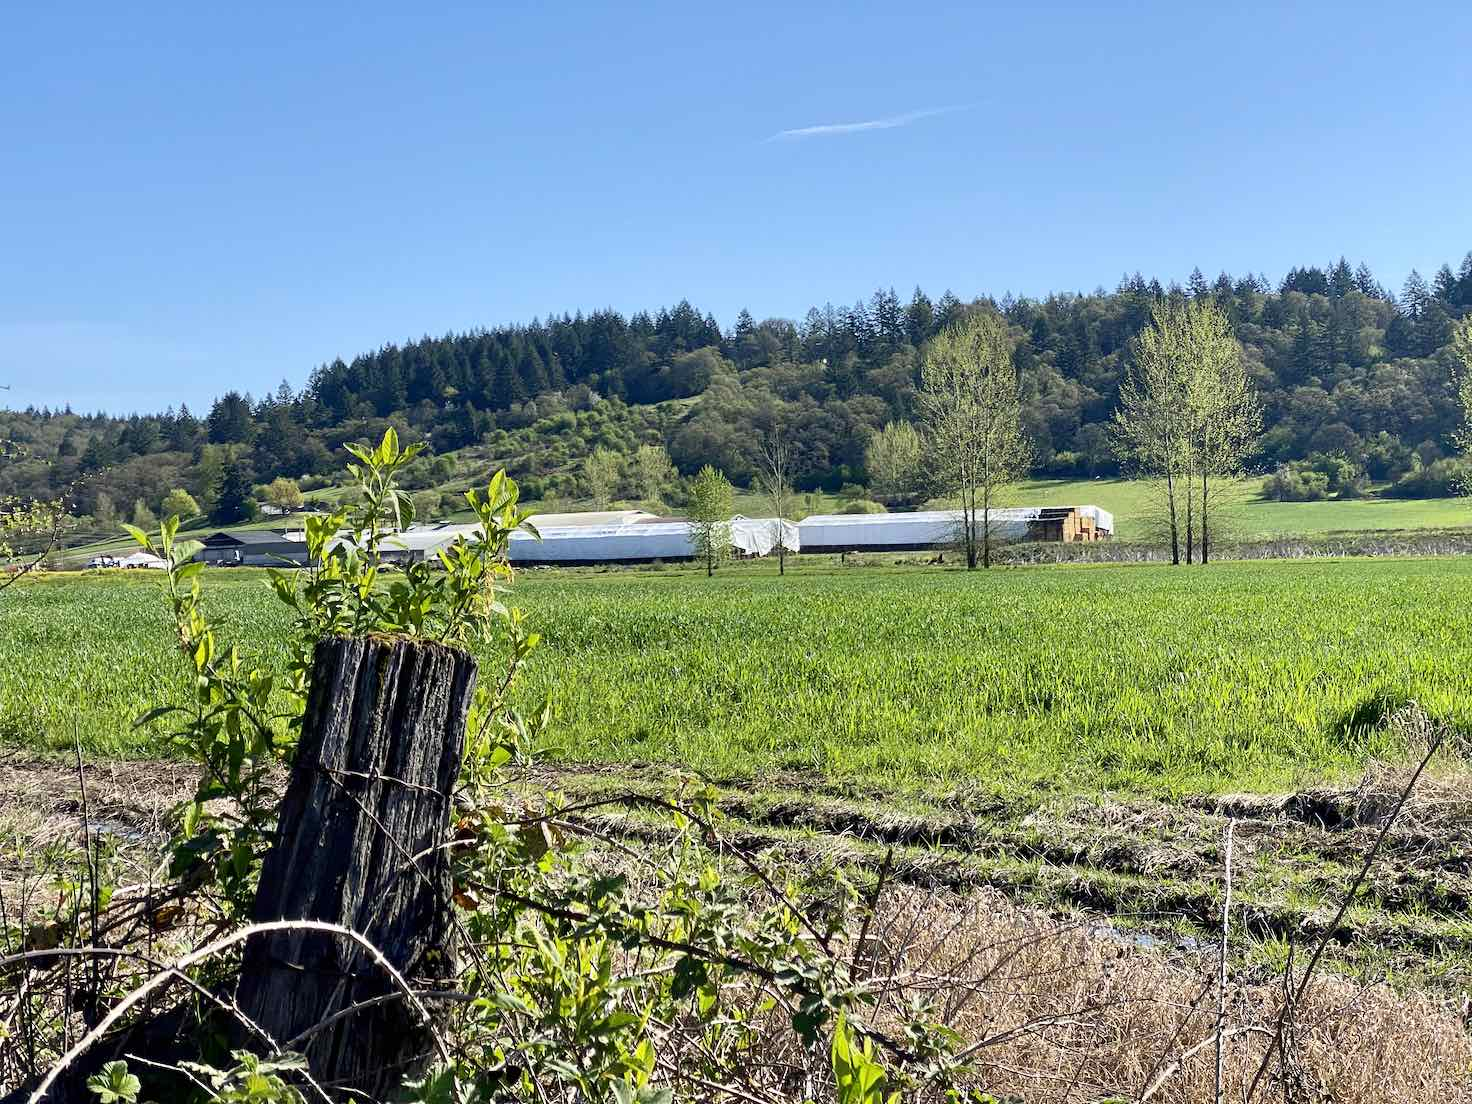 Farm with green fields in Yamhill county.